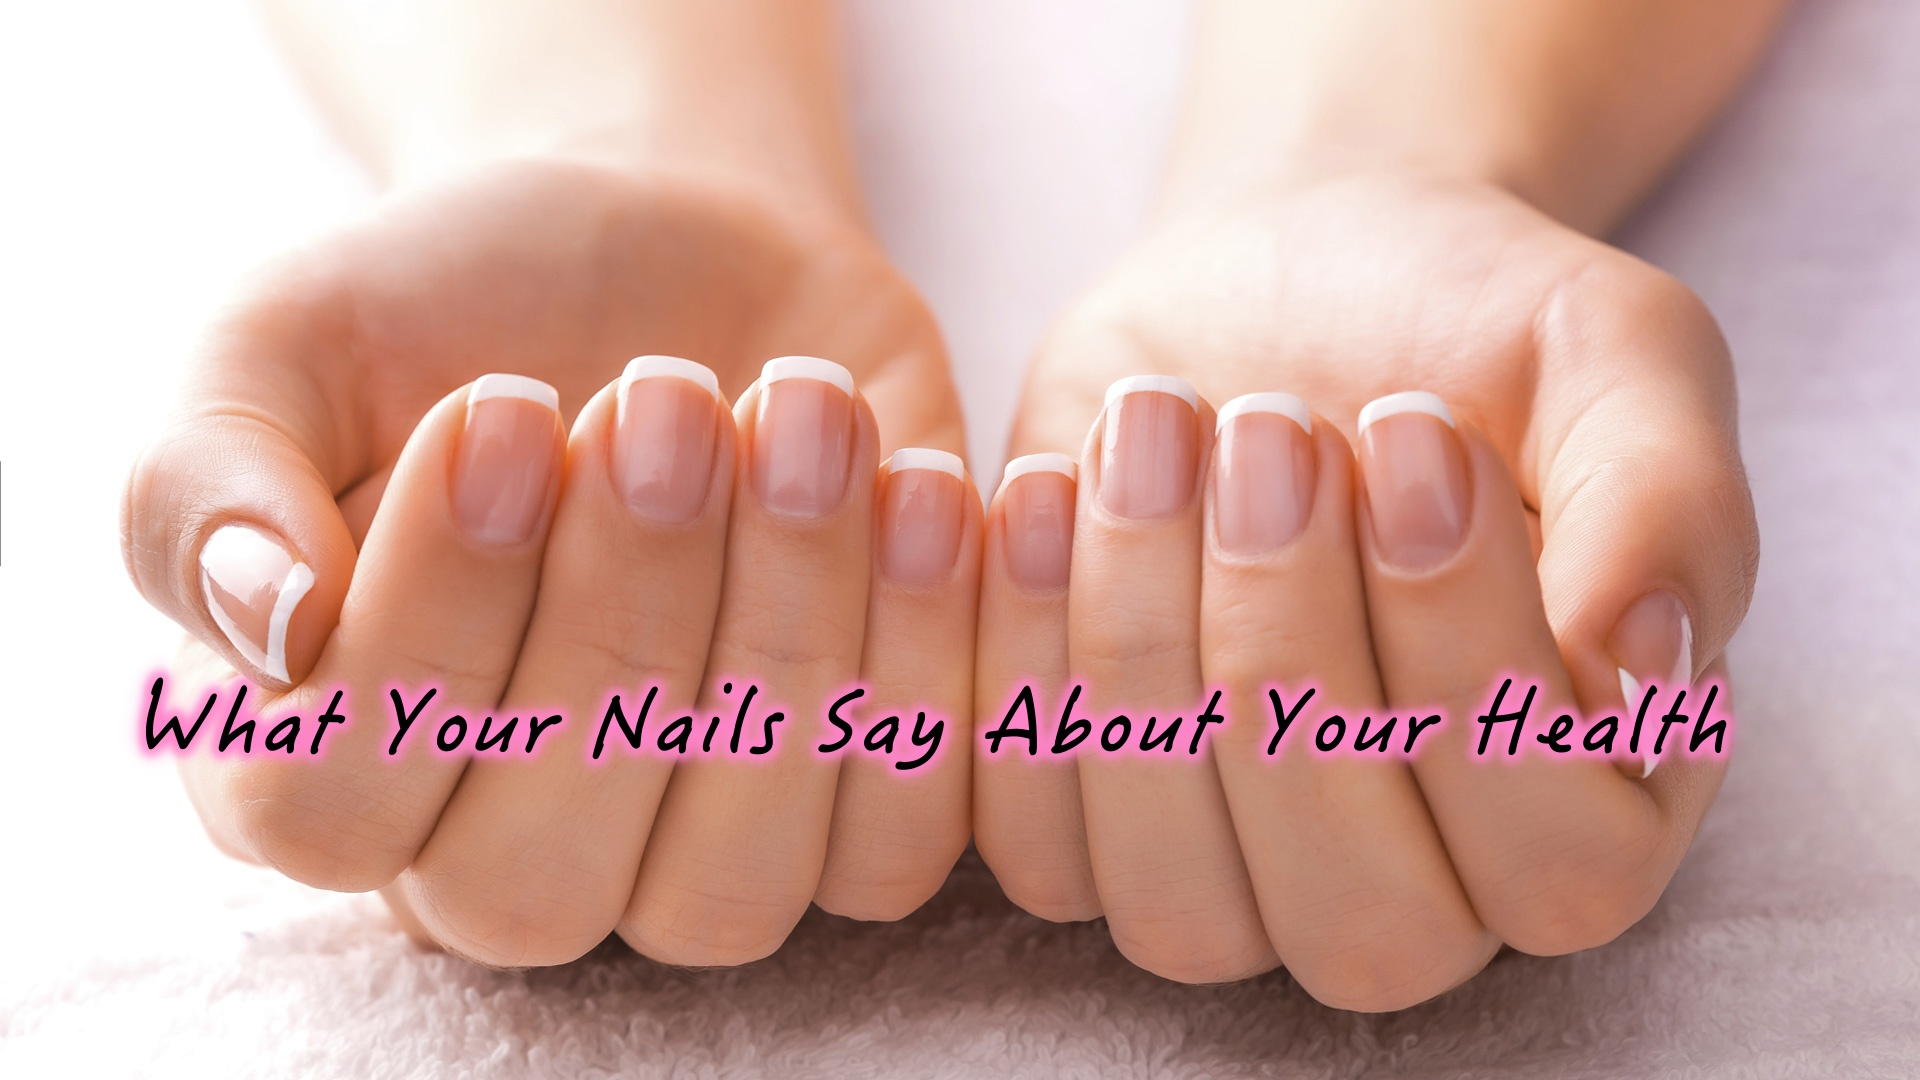 What Your Nails Can Tell You About Your Health